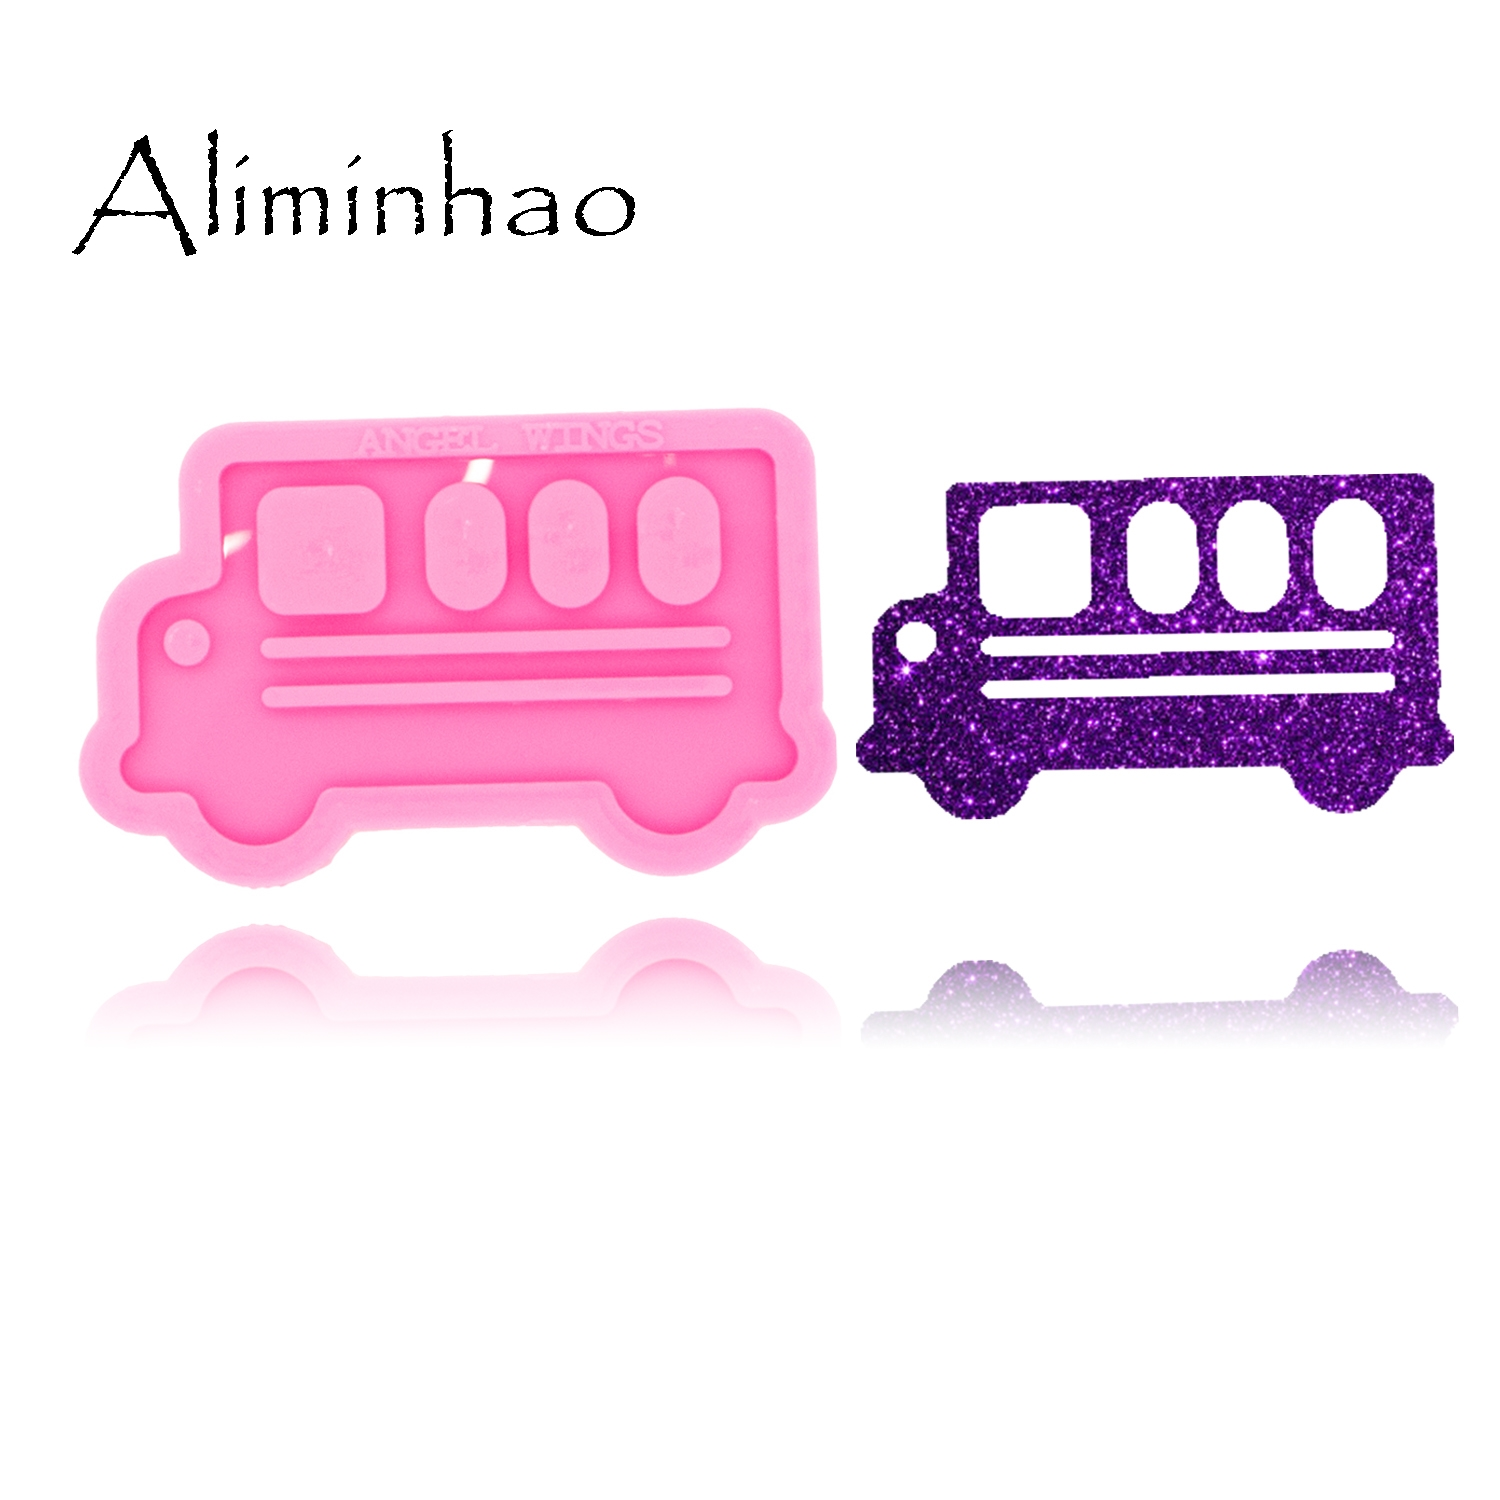 DY0462 Shiny Glossy Bus Shape Necklace Jewelry Epoxy Silicon Mould Crafting Keychain Resin Silicone Mold